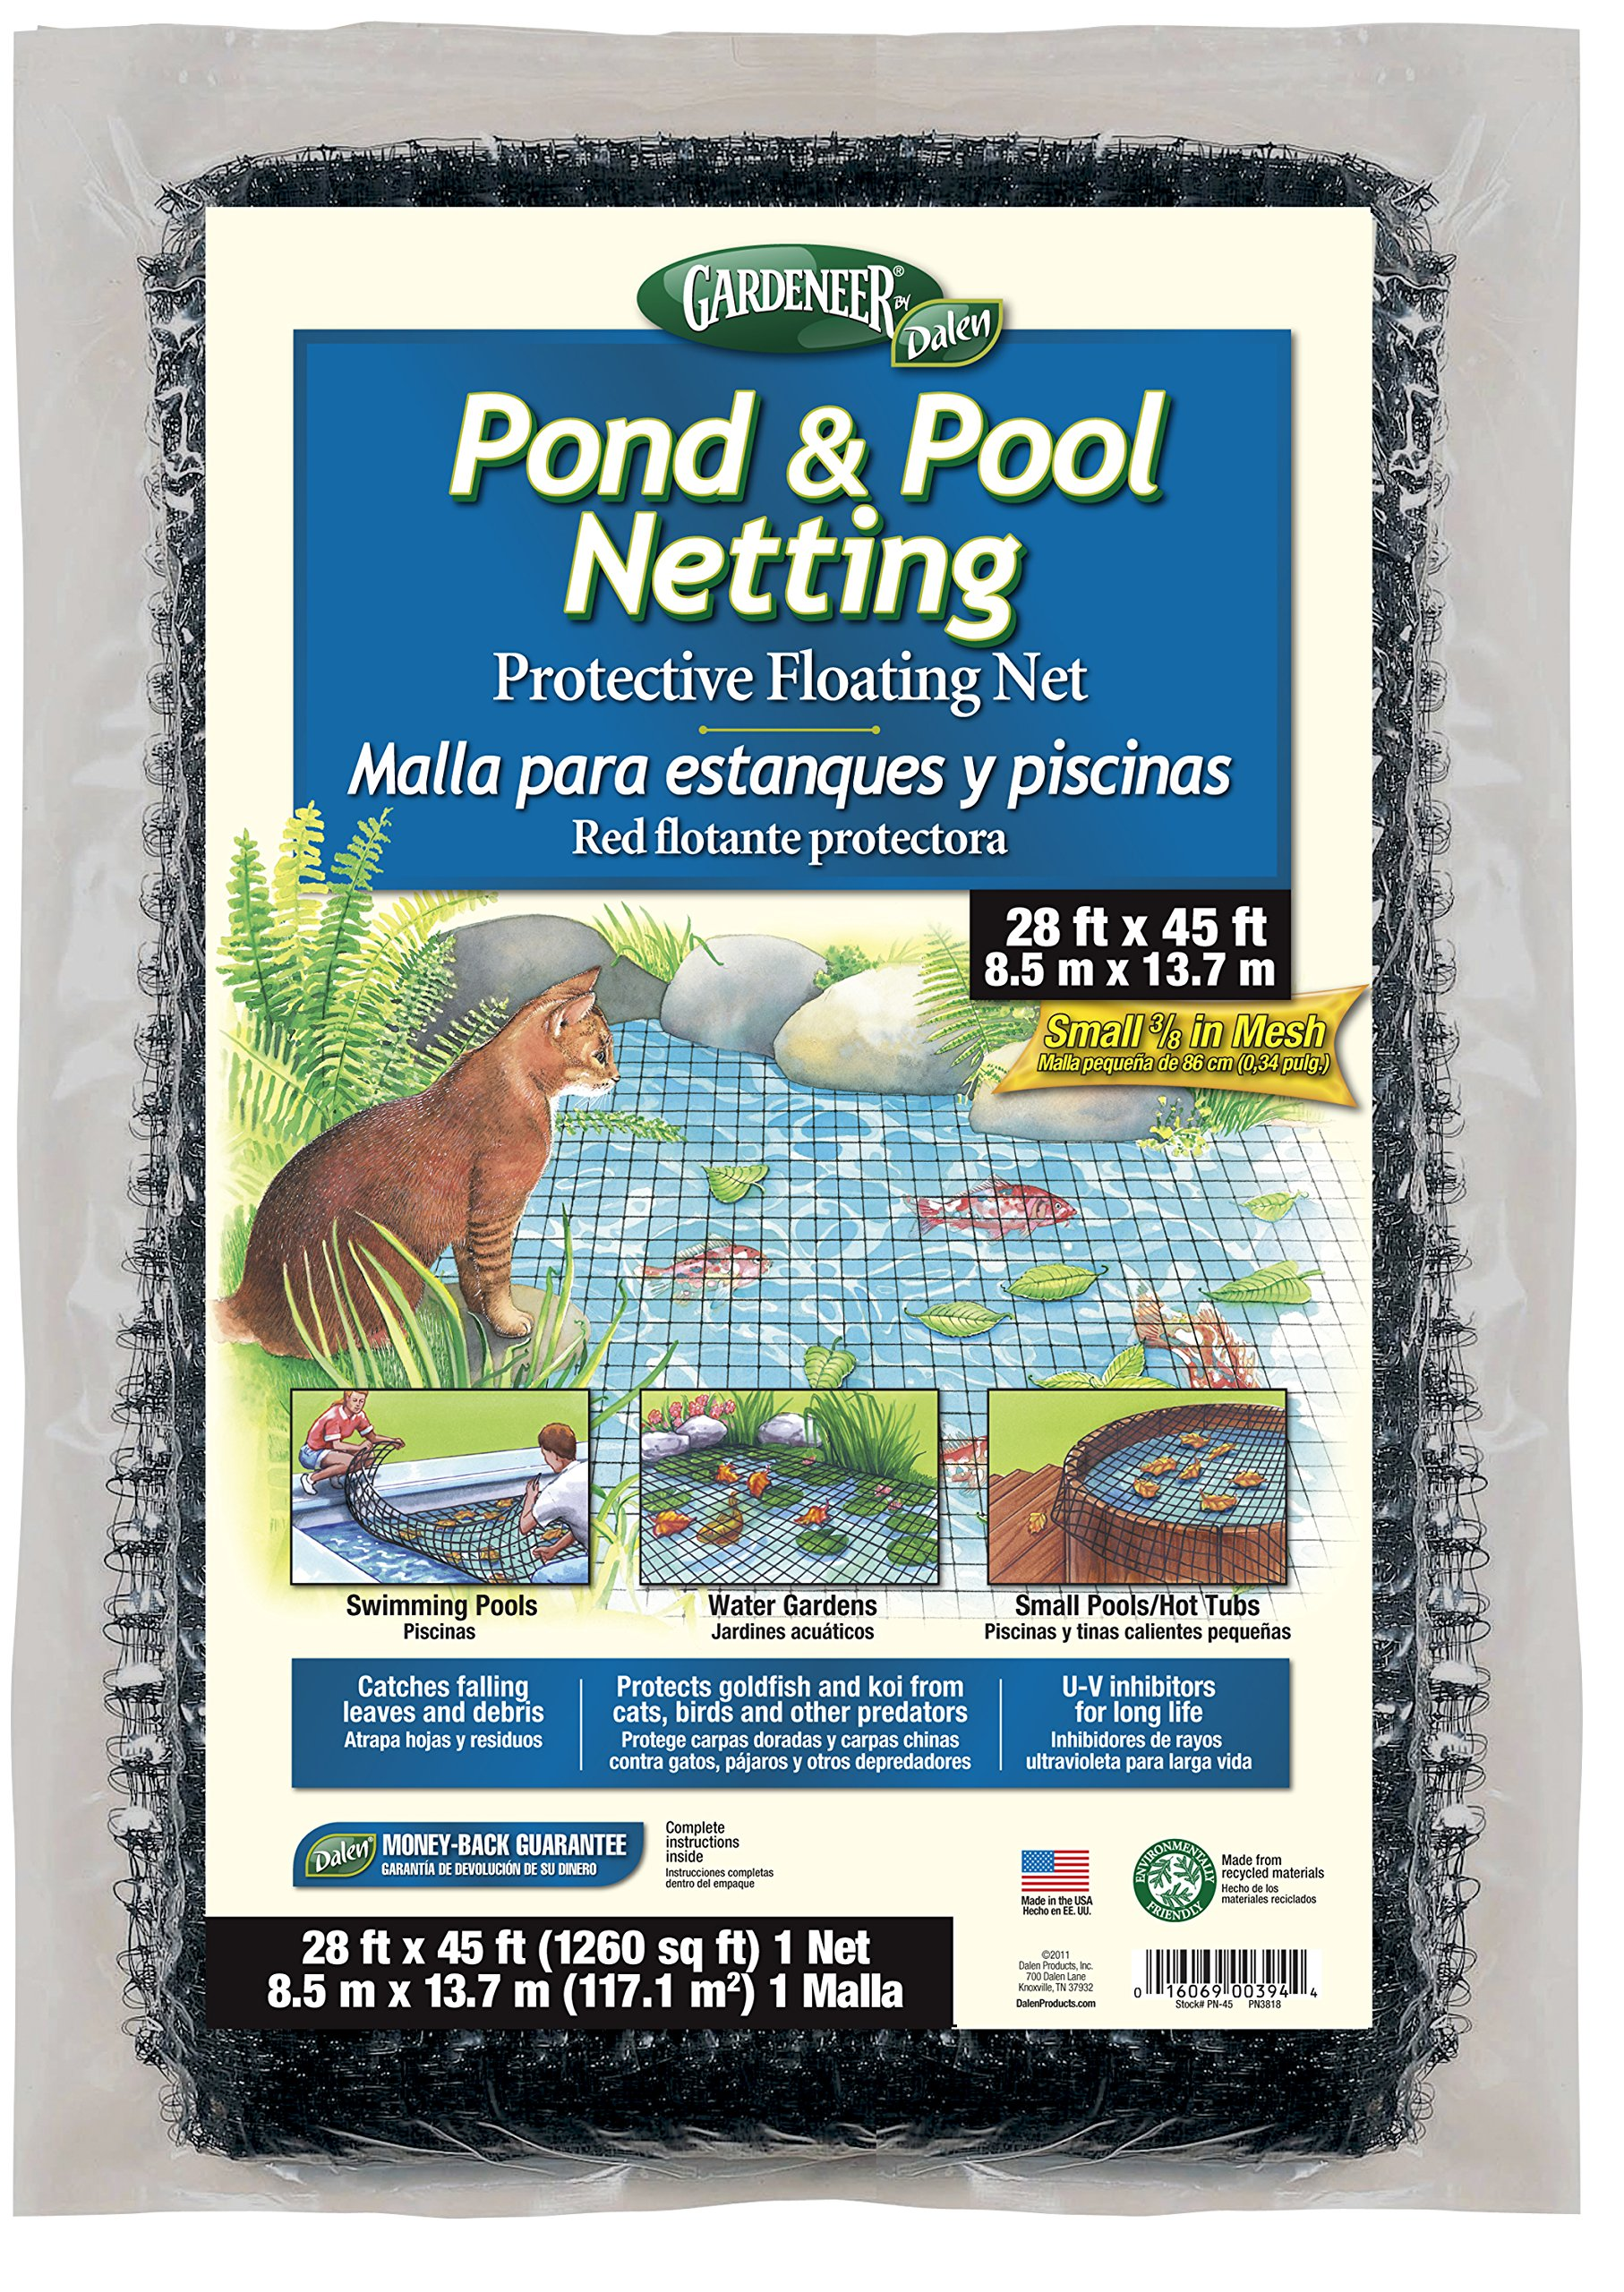 Dalen Gardeneer By Pond & Pool Netting Protective Floating Net 28' x 45' by Dalen